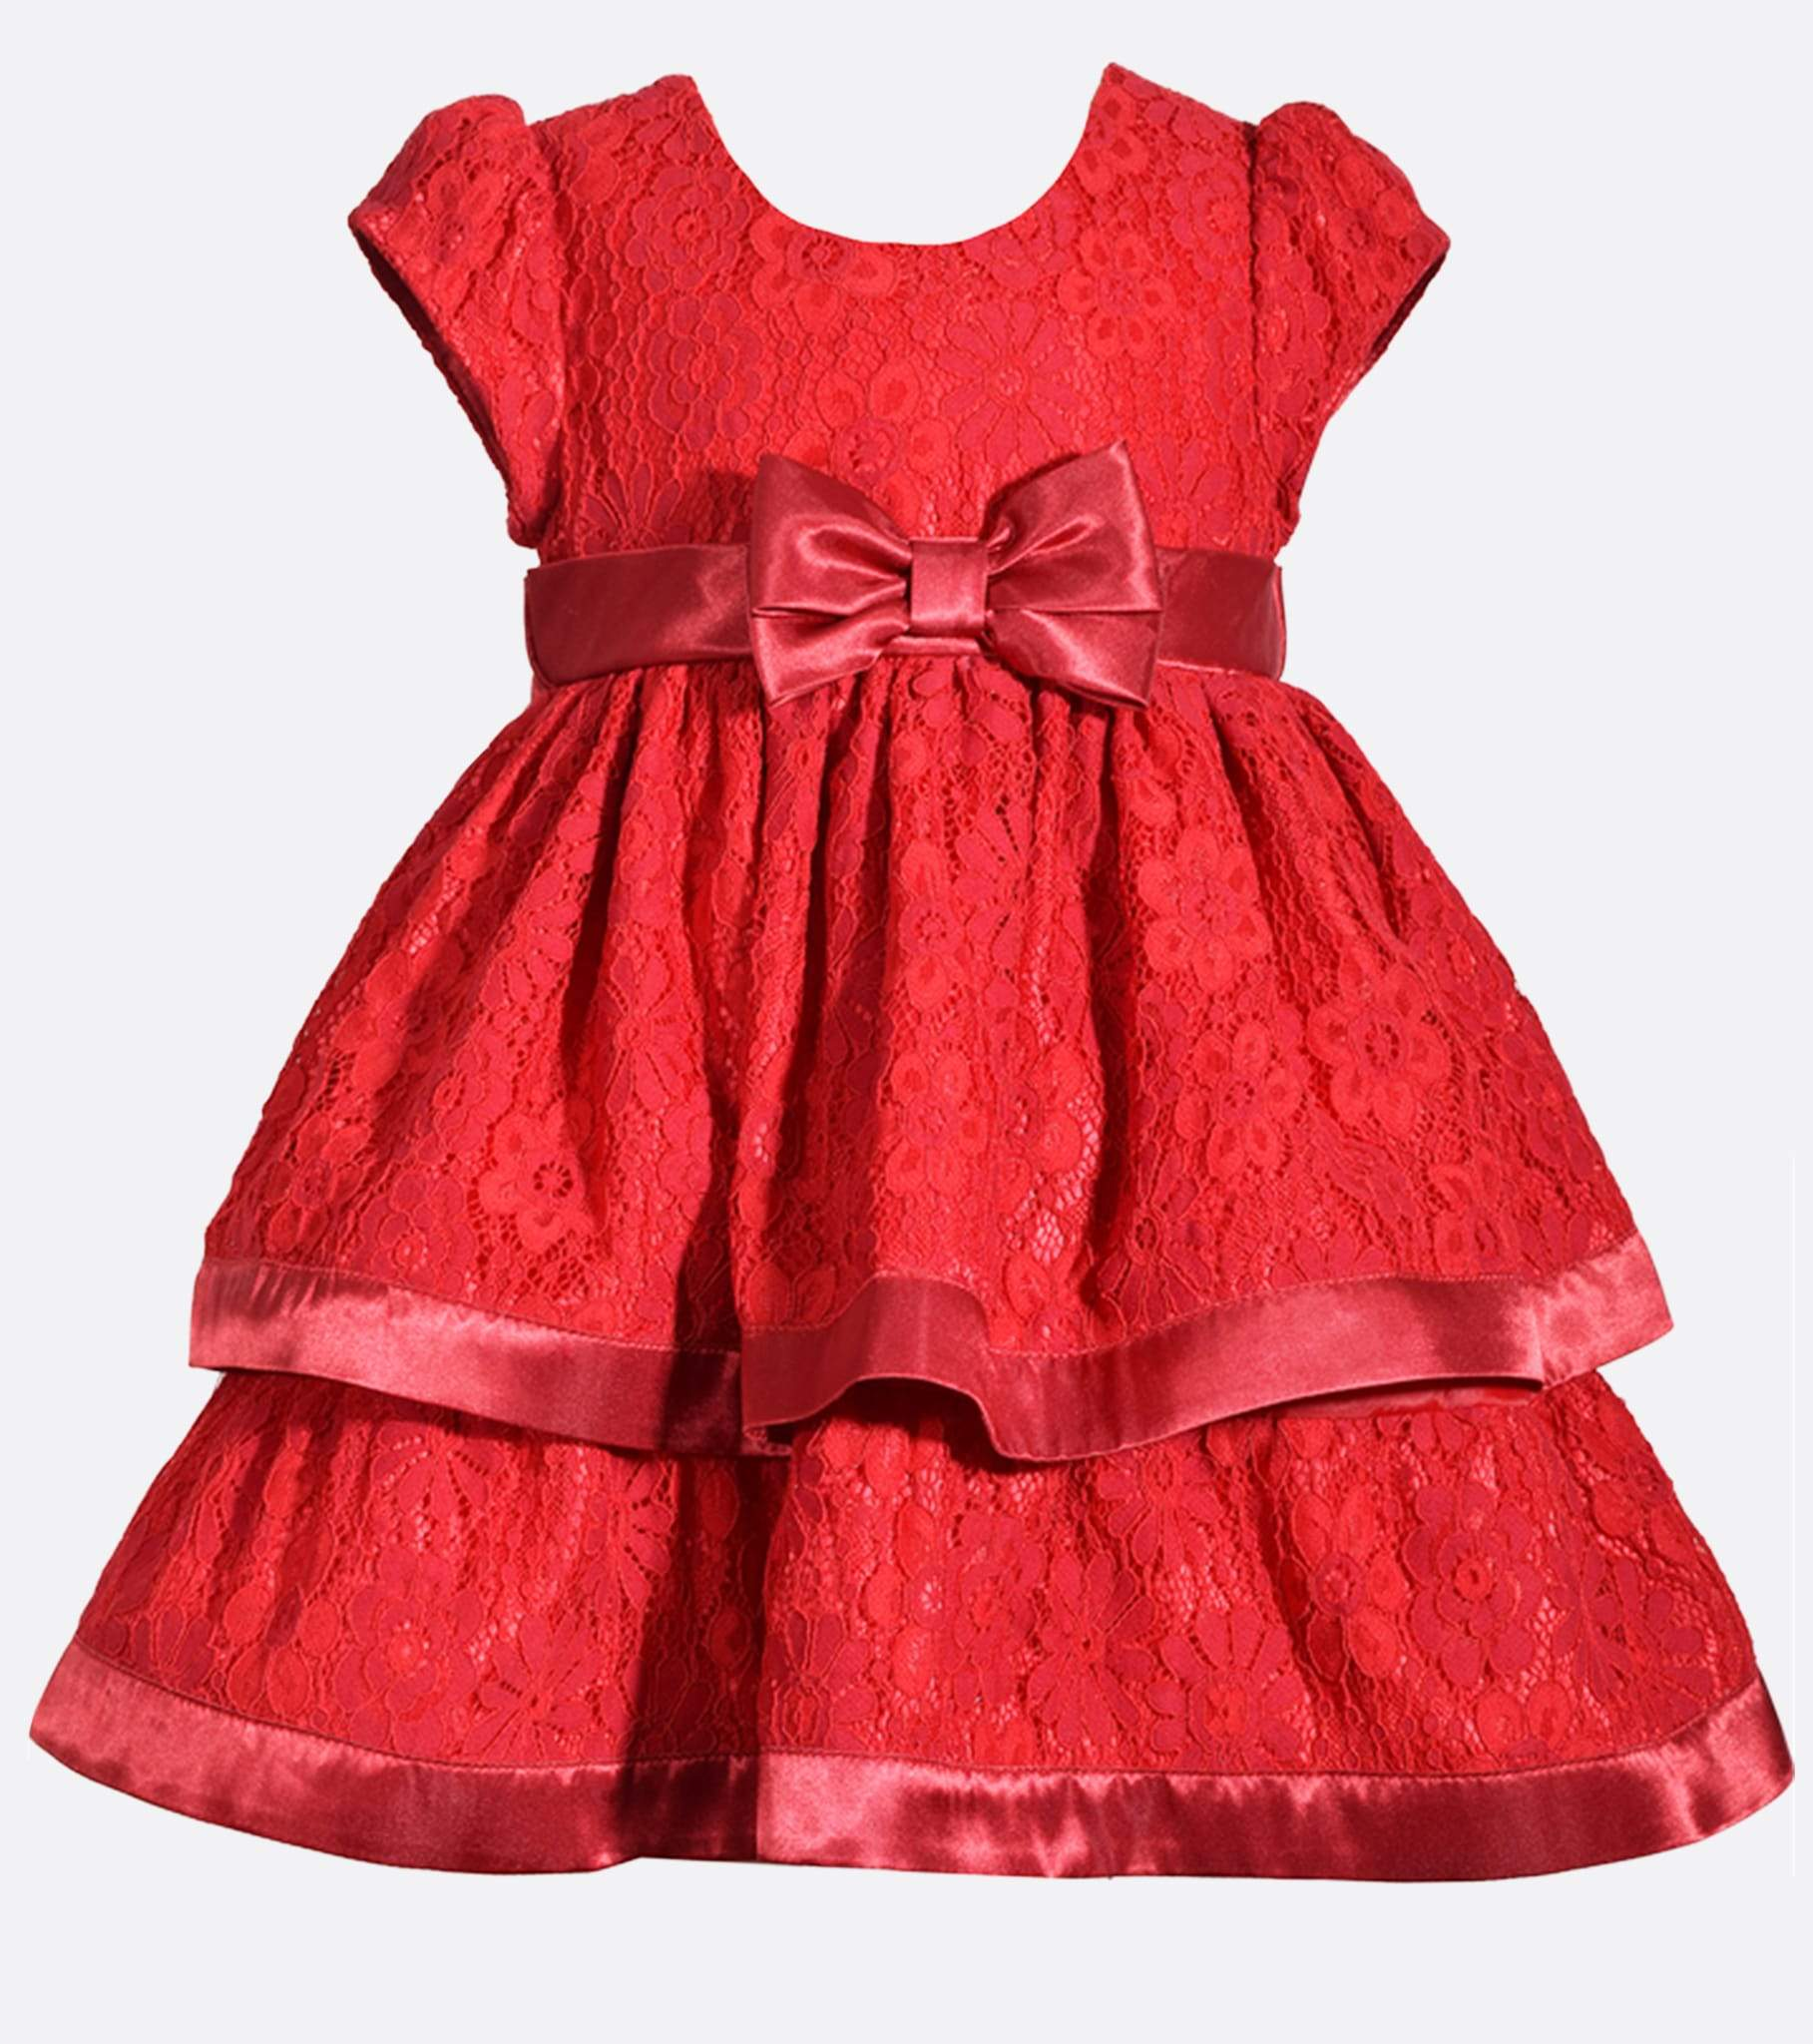 7f242b2cedb0 little girl christmas dress, christmas dresses for toddlers, girls holiday  dress